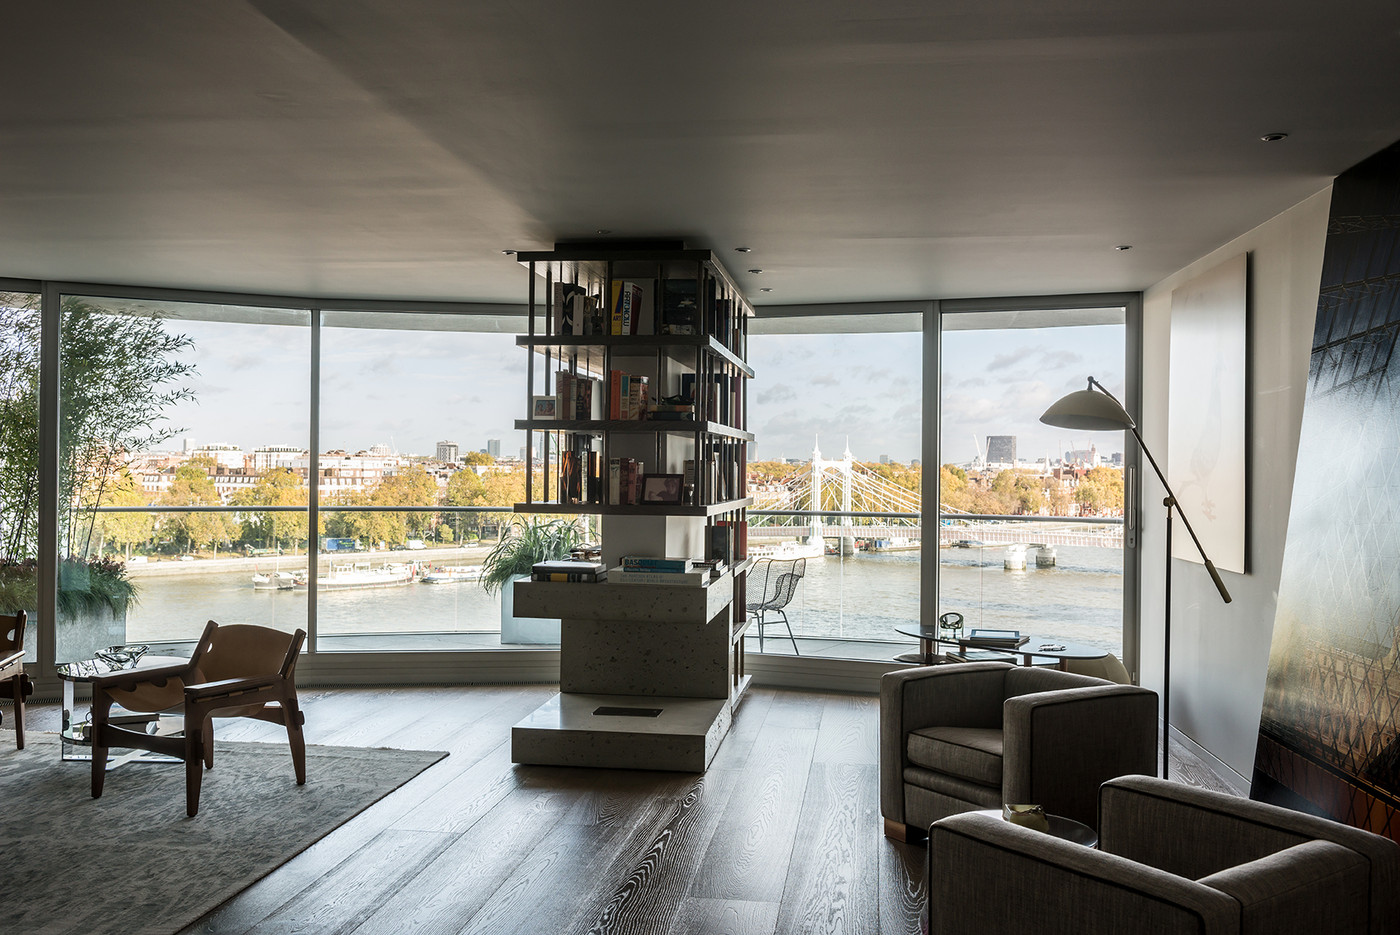 View in gallery Living room with floor-to-ceiling windows